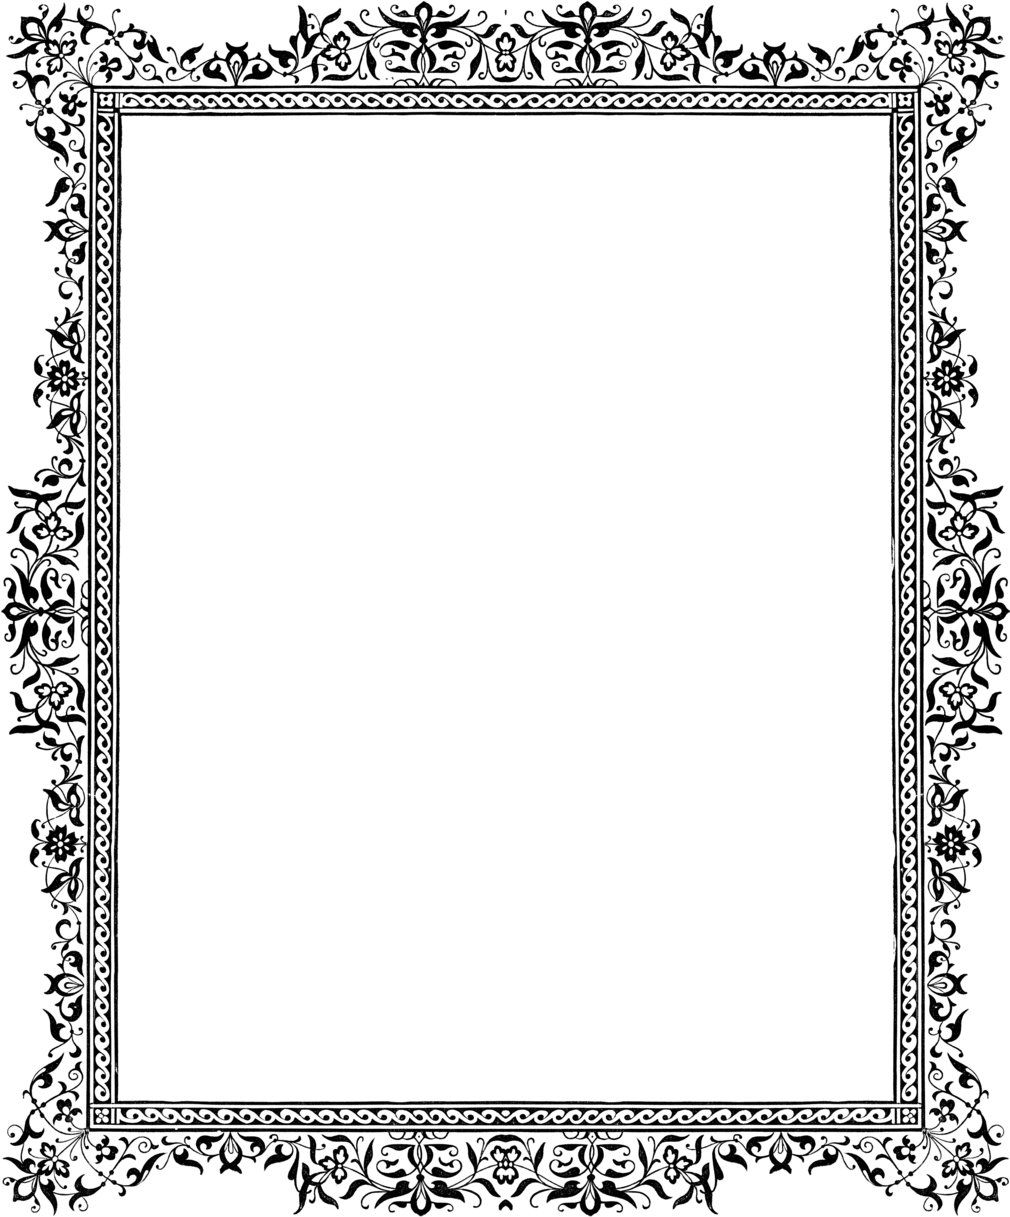 free microsoft borders and frames wow com image results rh pinterest co uk vintage frame clipart black and white vintage frame clip art free